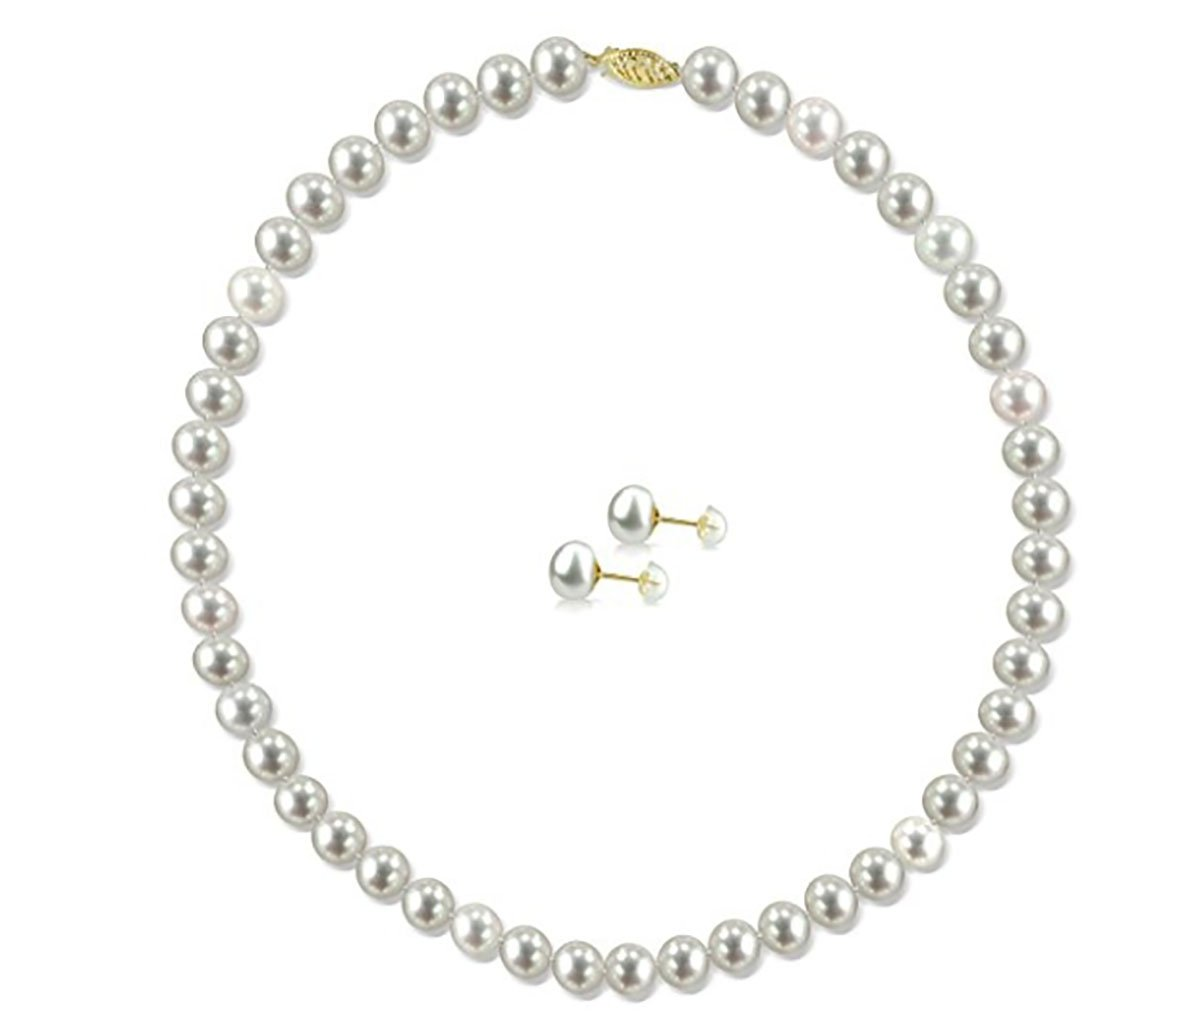 14k Yellow Gold 8-8.5mm White Freshwater Cultured Pearl Necklace 18'' and Stud Earrings Set